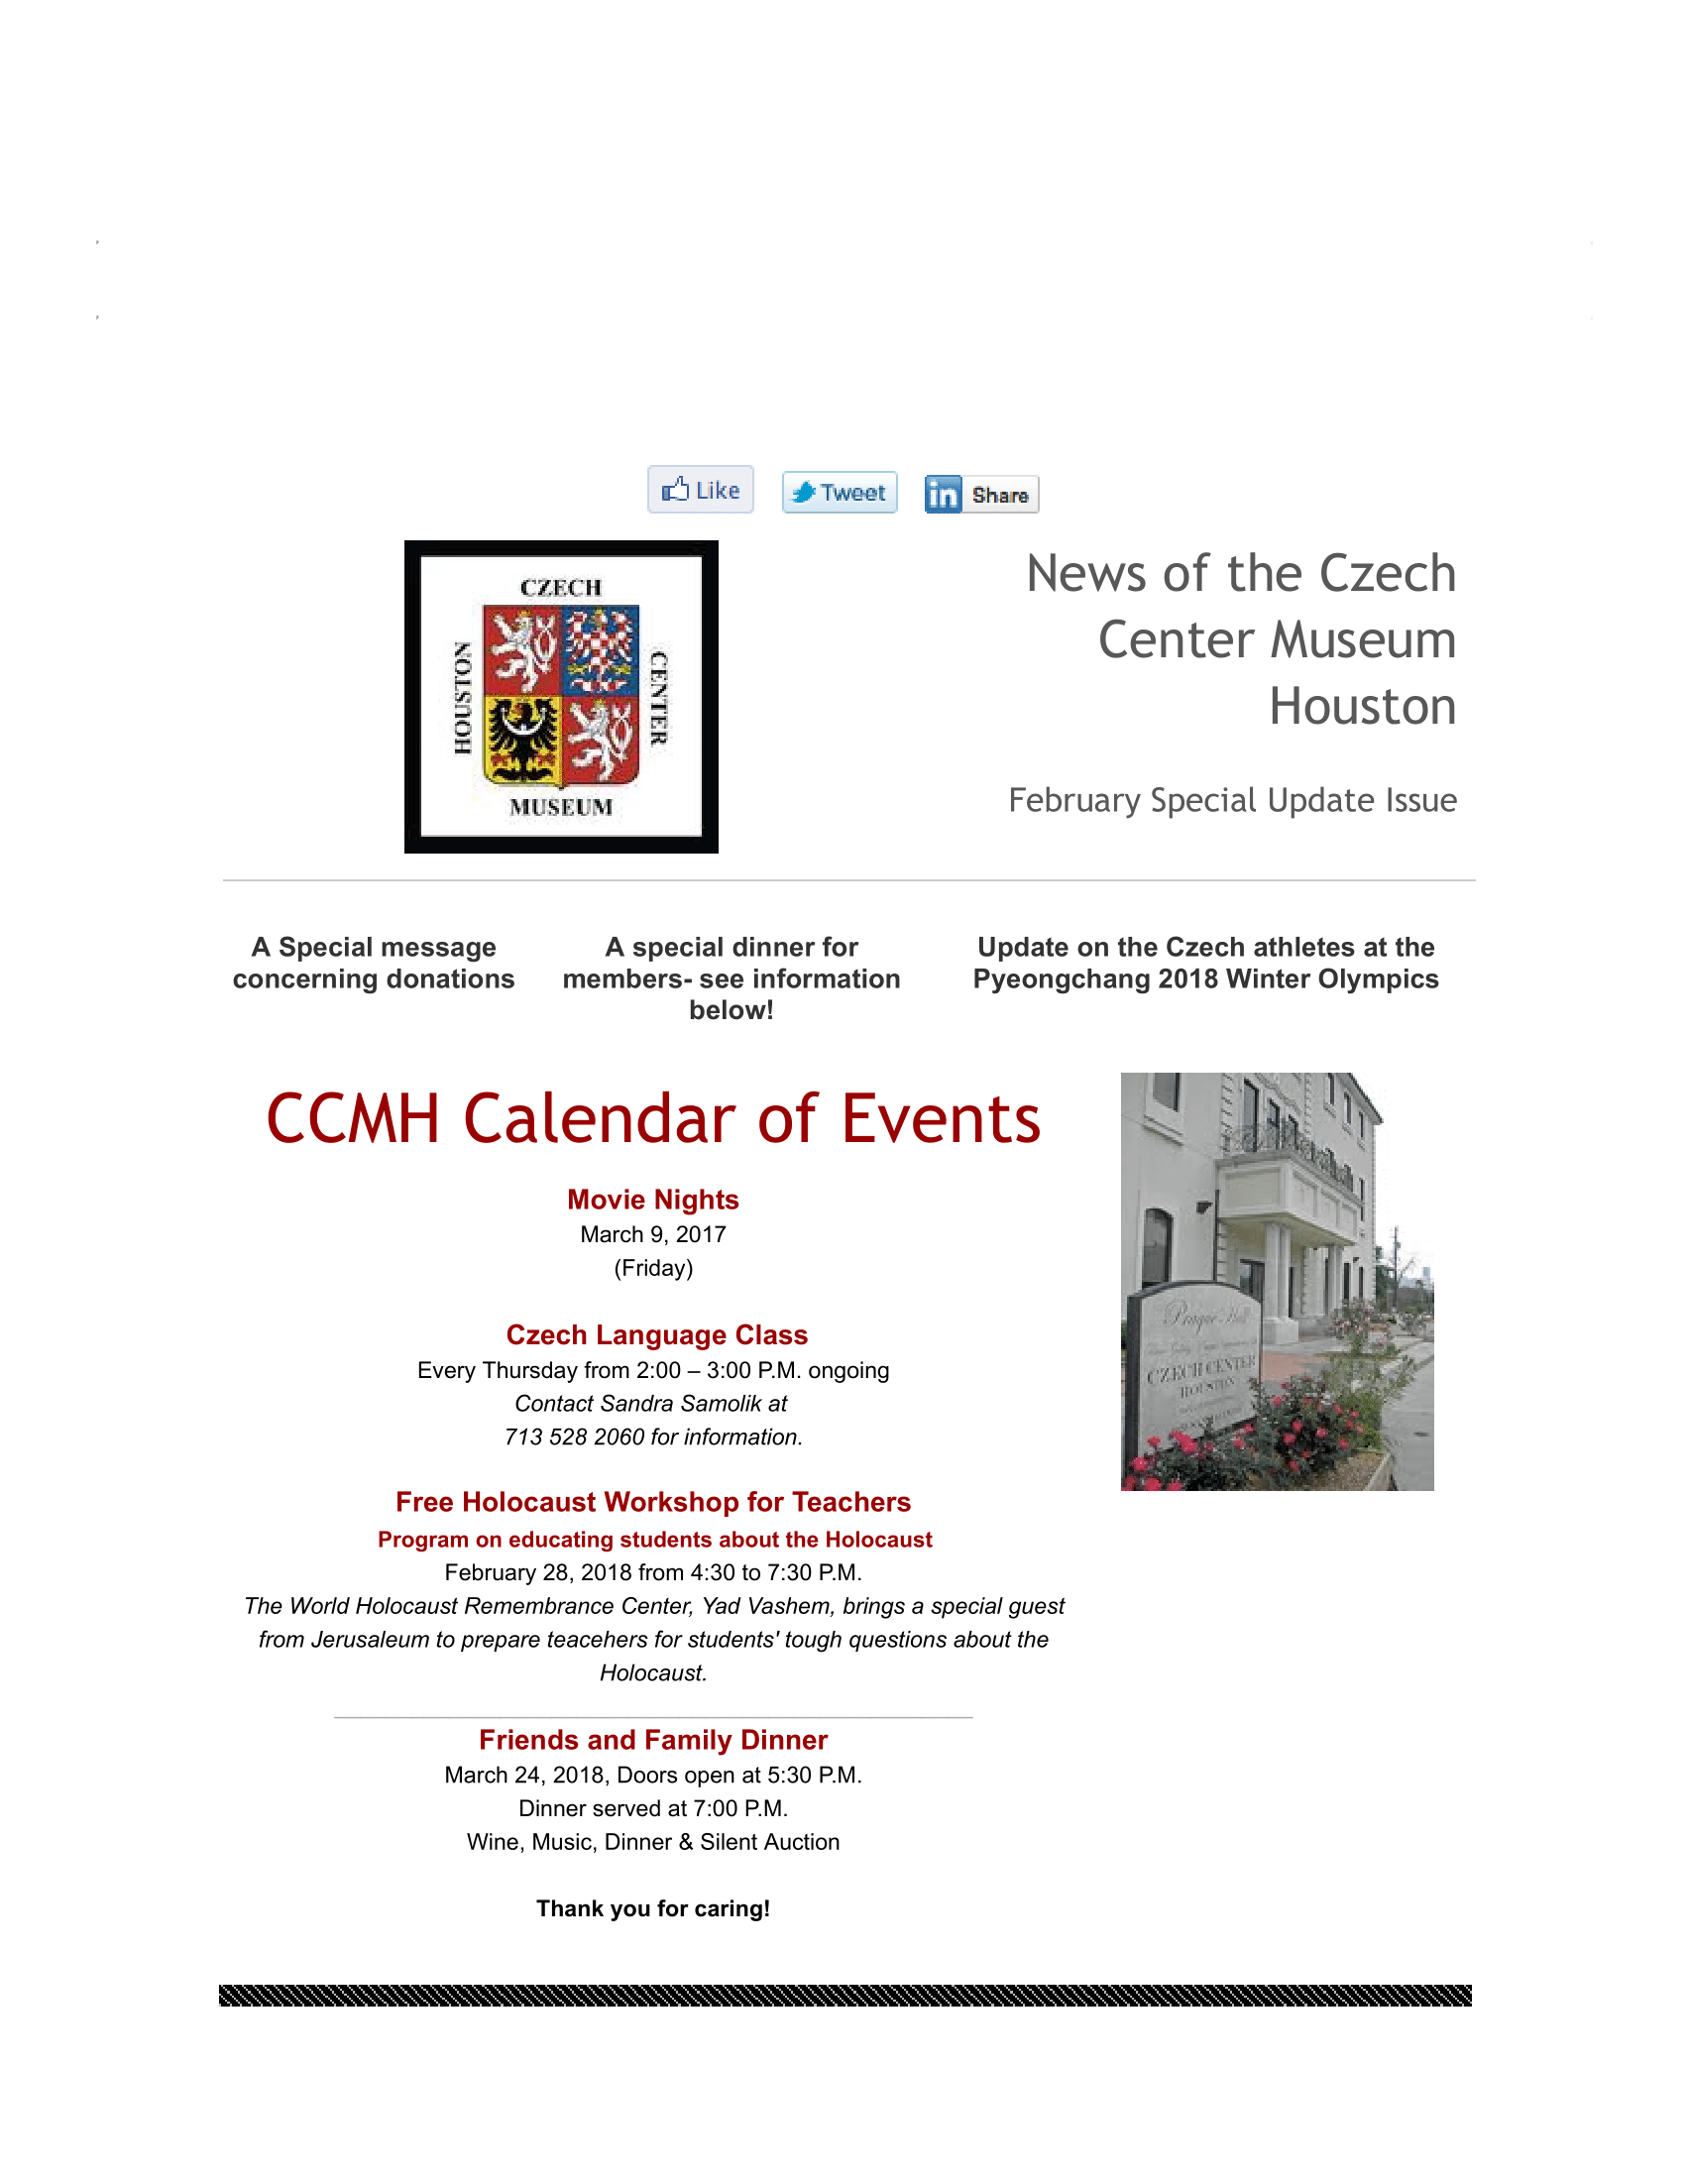 Czech Center Museum Houston Mail - CCMH February Newsletter-01.png